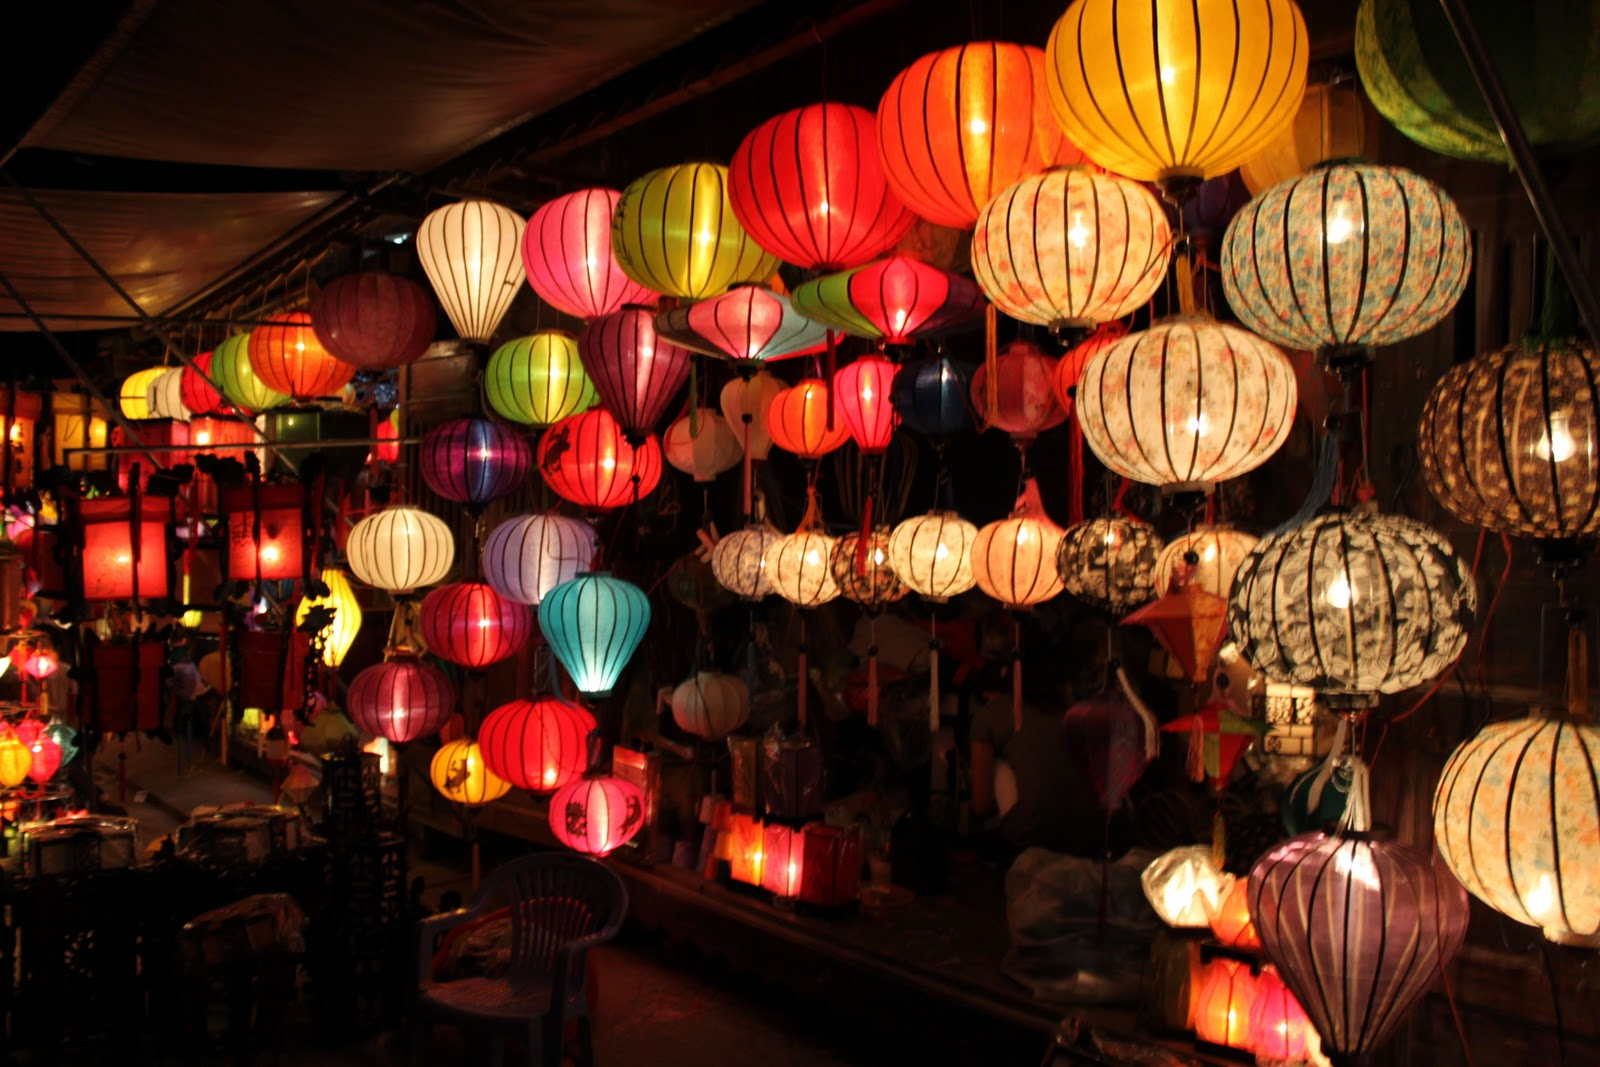 The sparkling lanterns in Hoi An night